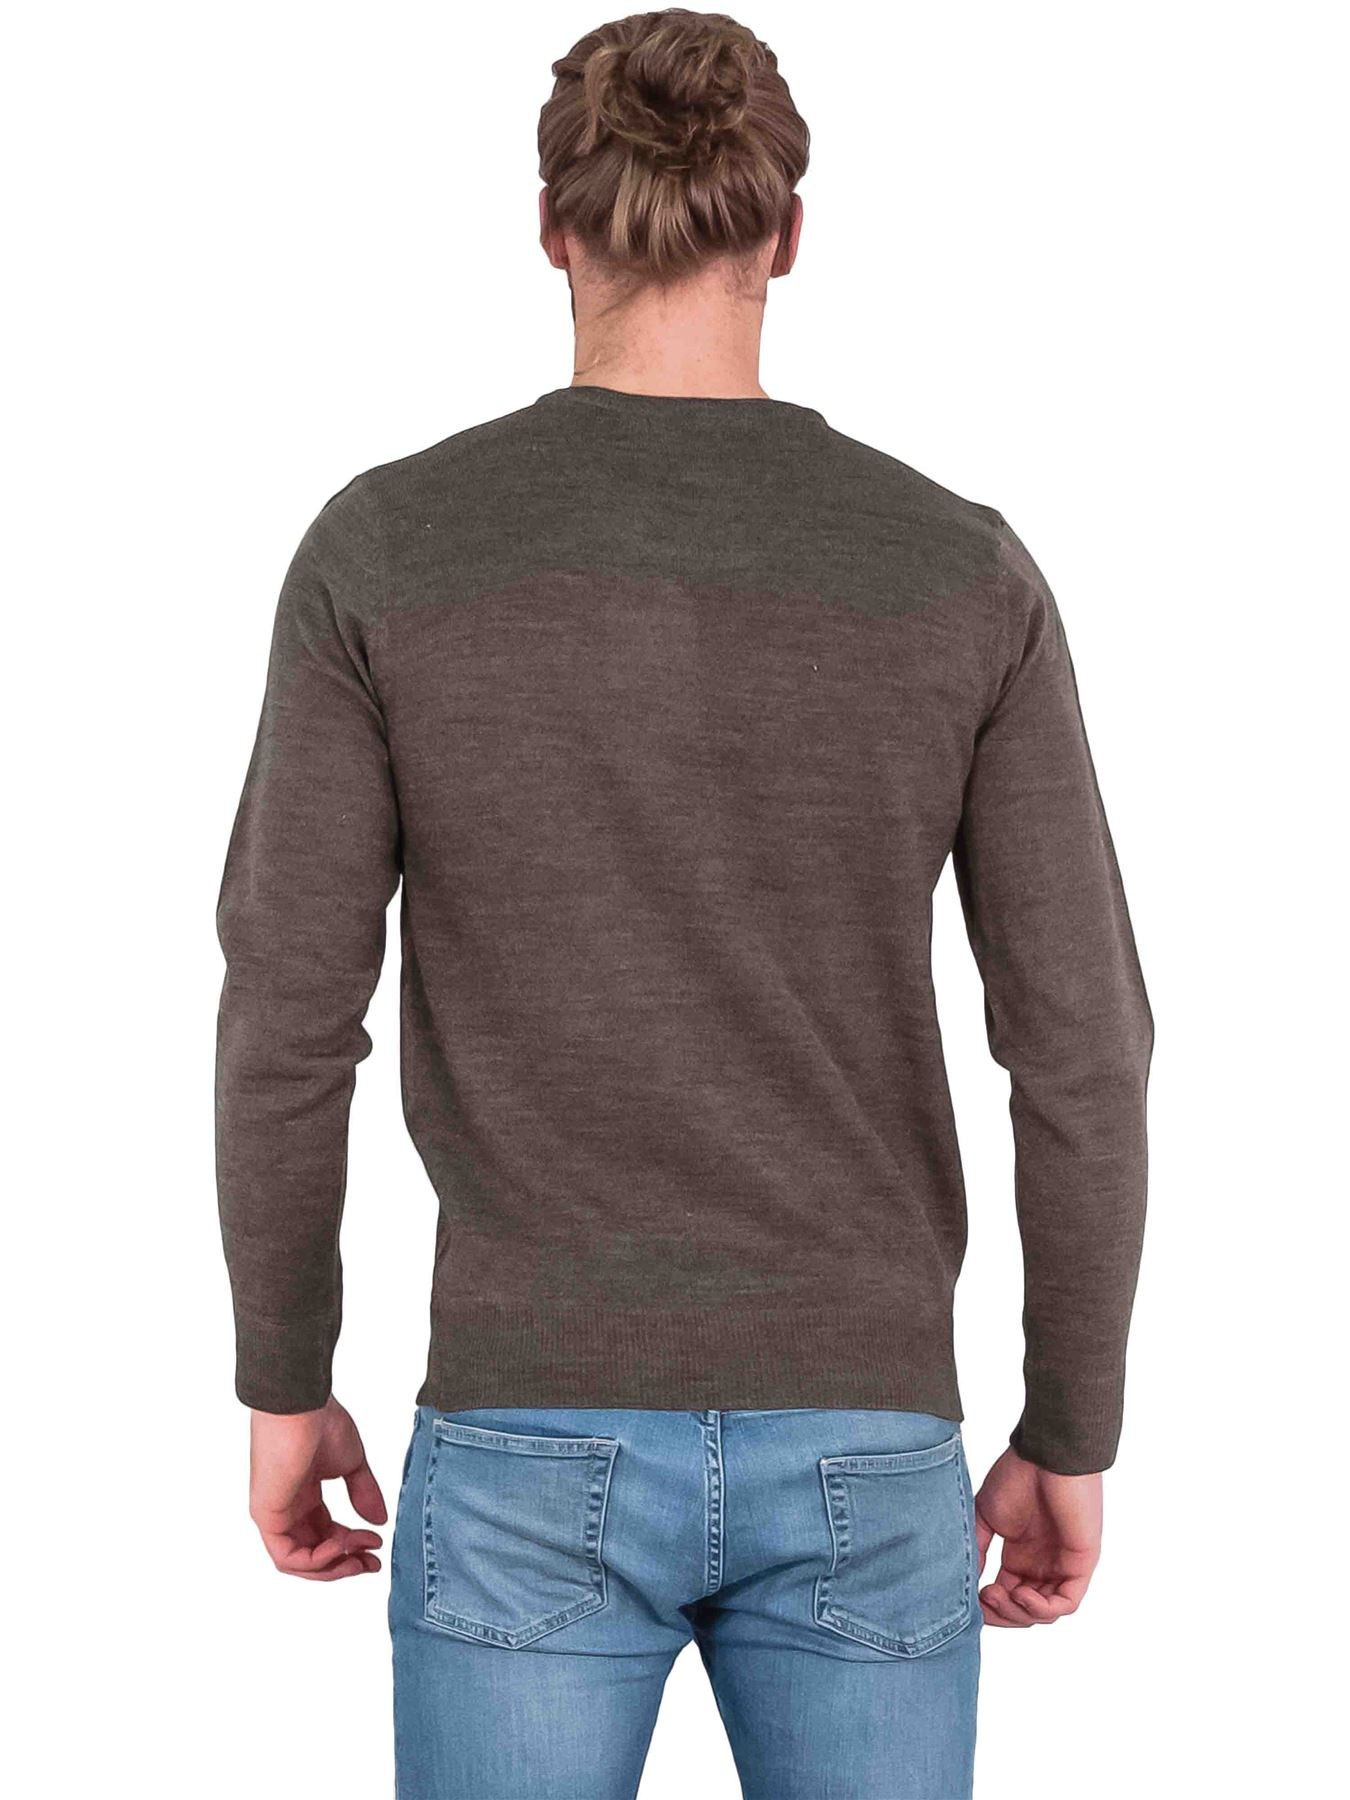 Mens Jumper Sweat Shirt Knitted V-Neck Pullover Casual Brave Soul Warm Winter L